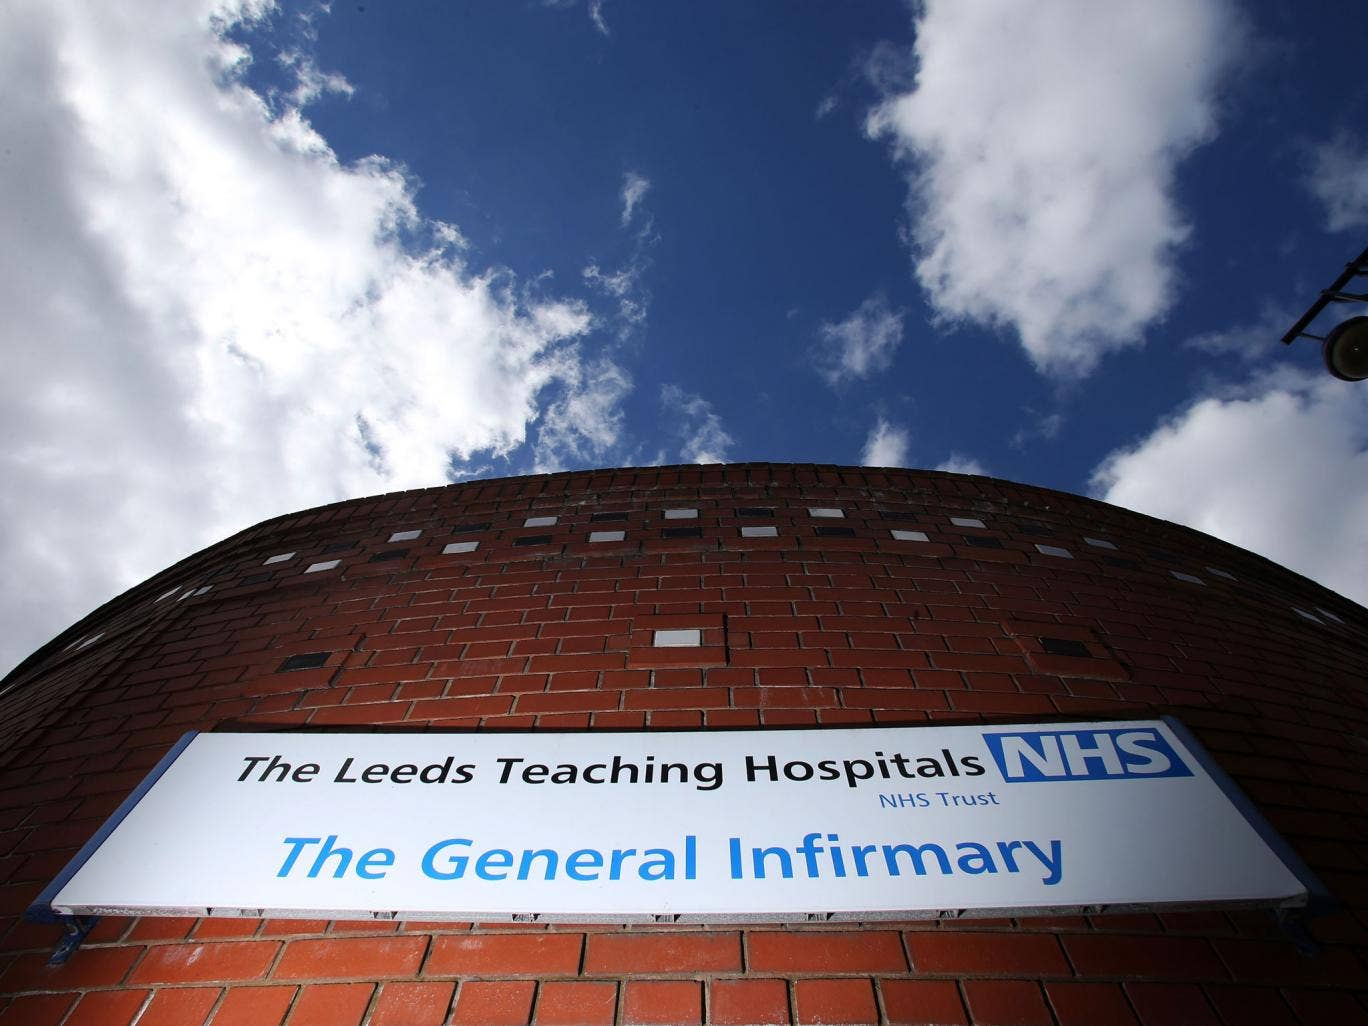 The Jubilee Wing of Leeds General Infirmary. The children's heart surgery centre that was temporarily closed last year due to fears over mortality rates is safe, according to a comprehensive review of its services